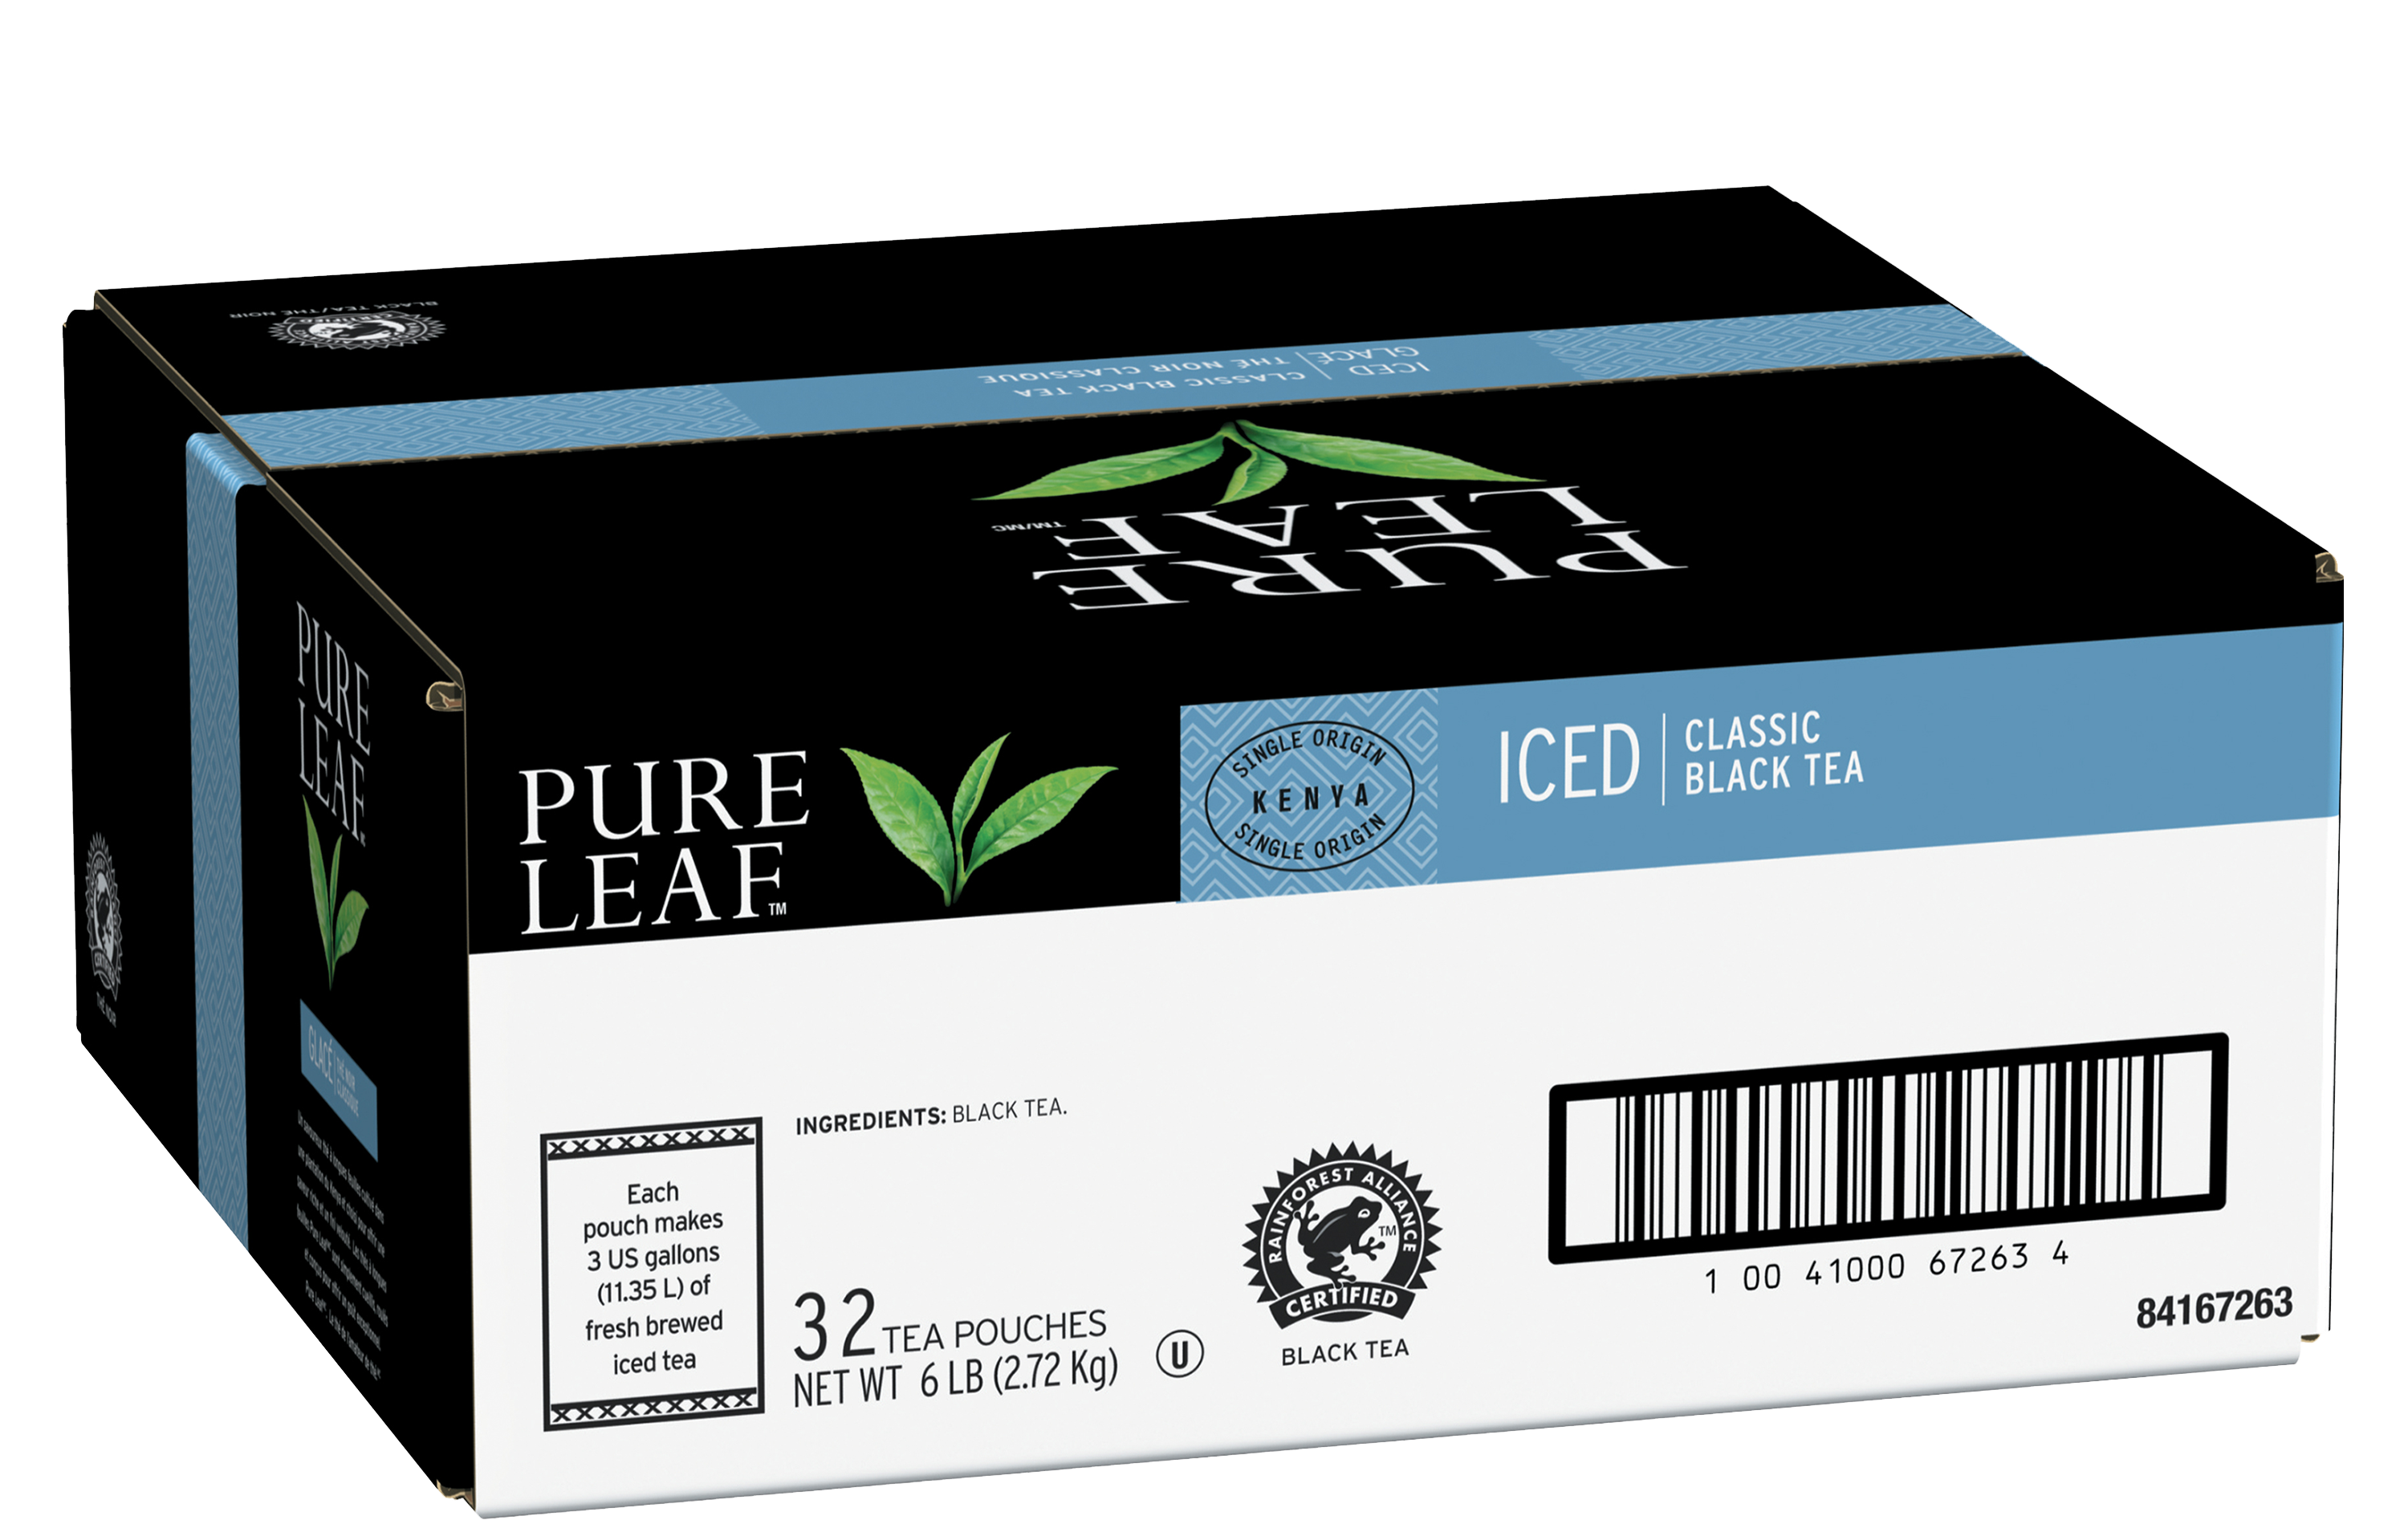 Pure Leafᵀᴹ/ᴹᶜ Iced Classic Black Tea - 10041000672634 - Pure Leafᵀᴹ/ᴹᶜ Tea is made with the finest.